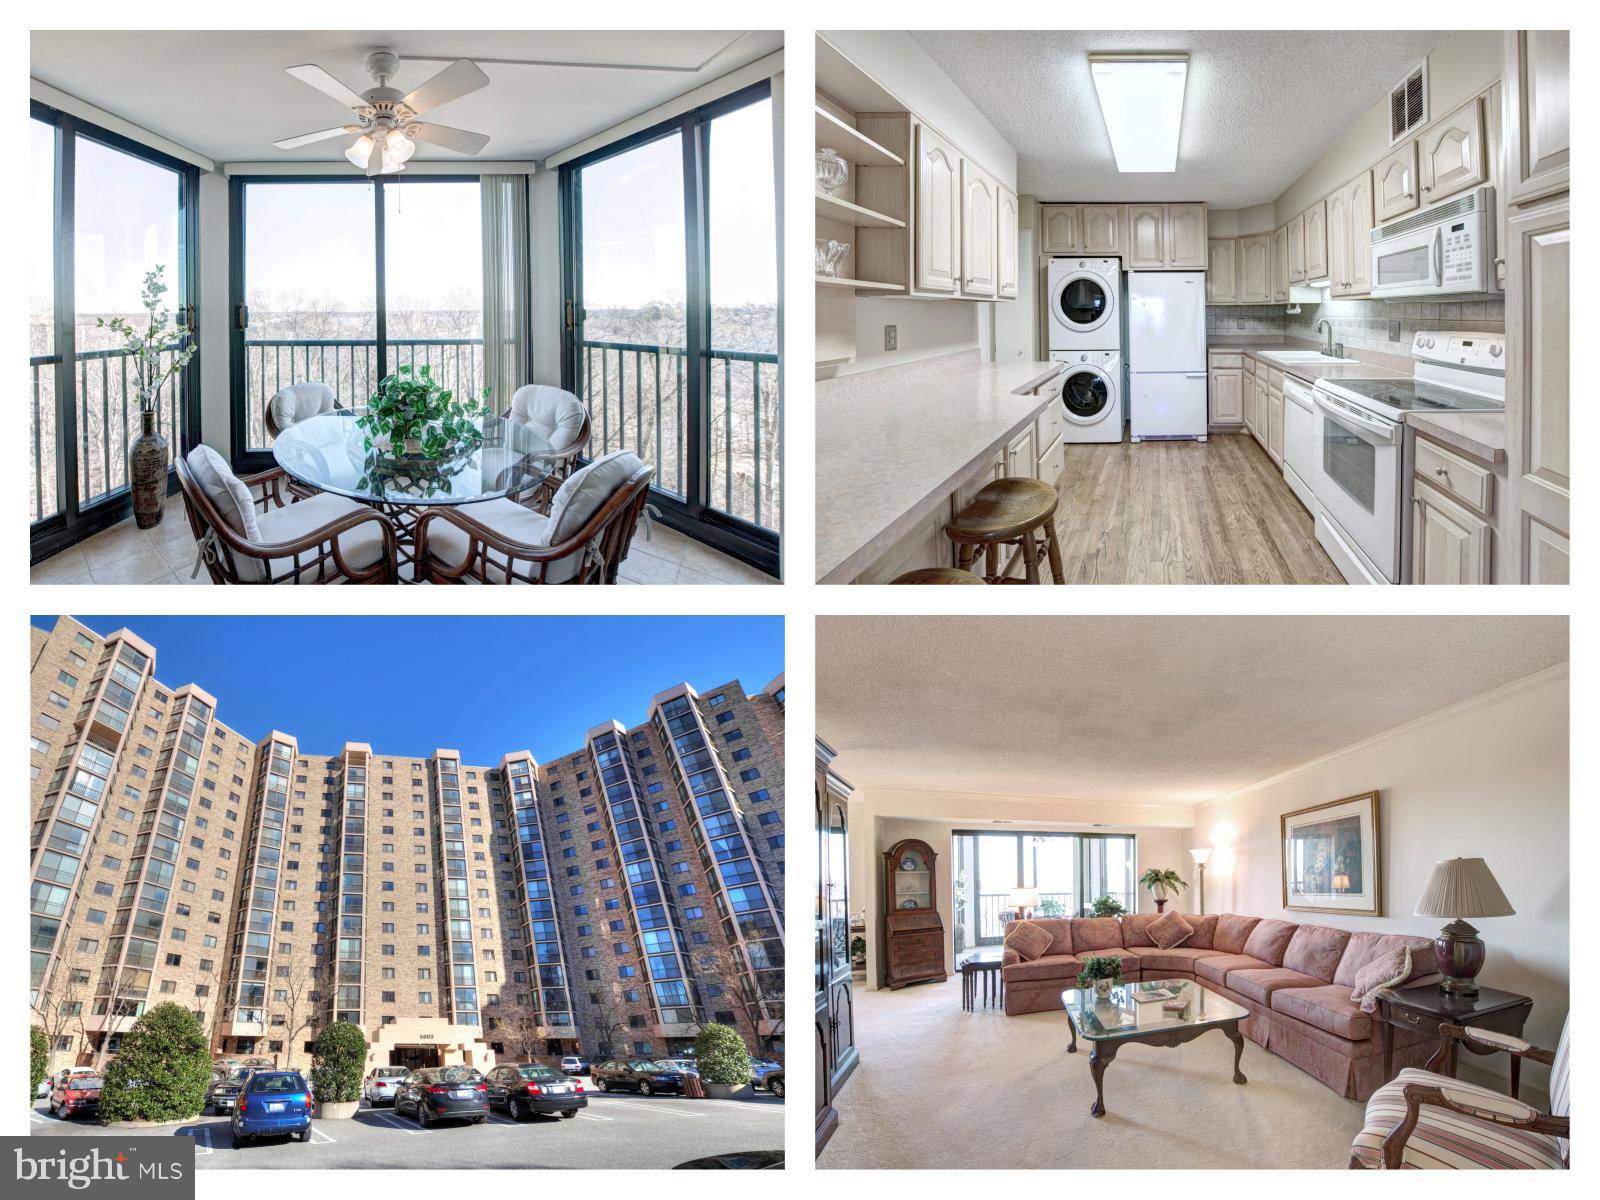 Rarely available 3 bed, 2 bath condo w/ 1,695 sf of living space at the Award Winning Montebello (2019 Condo of the Year Award). This well-maintained unit has two enclosed sunrooms/balconies with seasonal views overlooking the Potomac. Easy access to several commuting options including a short shuttle to the metro, minutes from I95 & I495. Multiple walk-in closets and plenty of storage in this oversized condo! Includes assigned garage parking space and a large storage unit. Amazing community amenities including a fitness center, indoor and outdoor swimming pools, a bowling alley, tennis courts and much more!